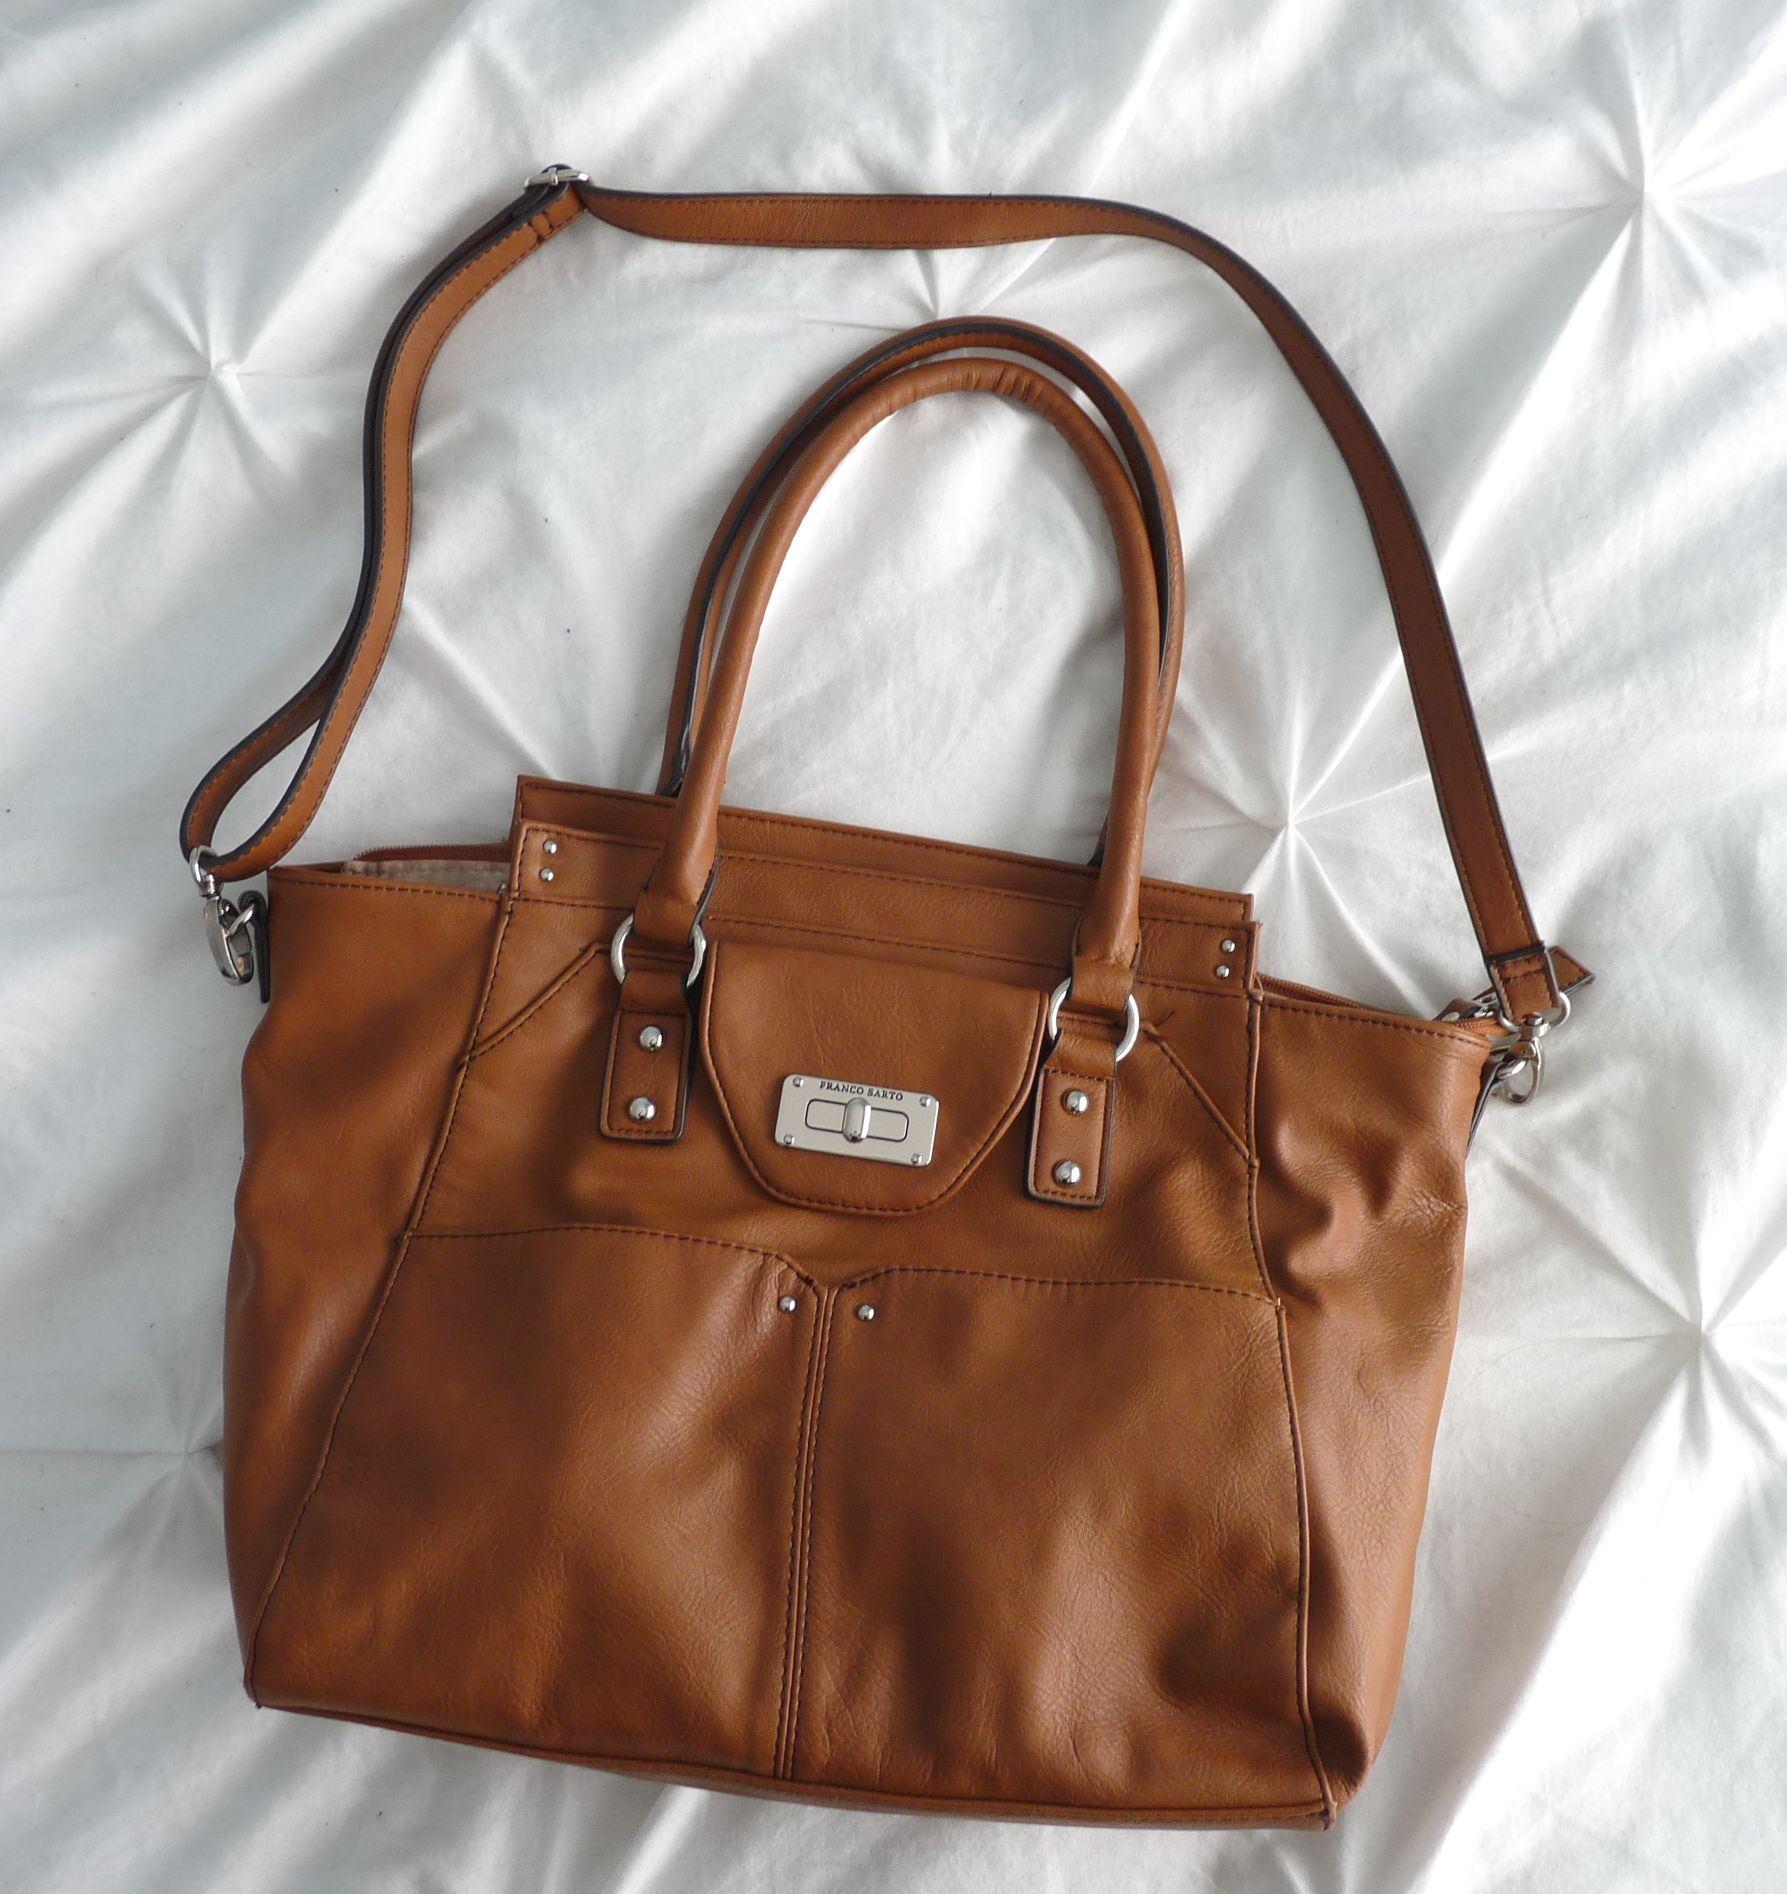 my purse Your product will be shipped to its final destination to arrive in 2 business days or faster if your order is placed before the 11 am pst cutoff time, then it will.